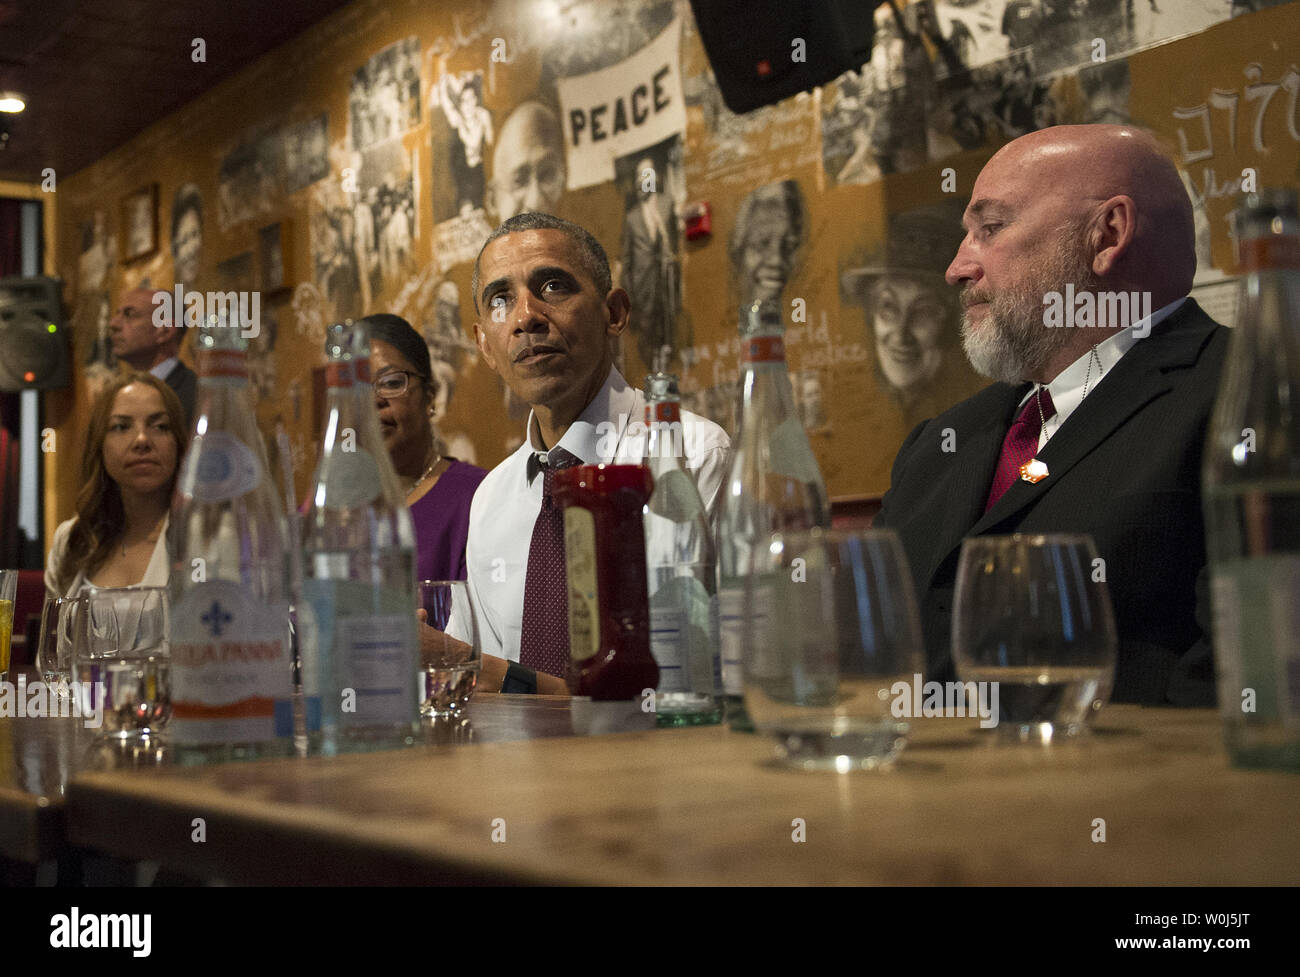 President Barack Obama speaks to the media after having lunch with formerly incarcerated individuals who have received commutations, at Bus Boys and Poets restaurant in Washington, D.C. on March 30, 2016. Obama commented 61 additional sentences today. Photo by Kevin Dietsch/UPI Stock Photo